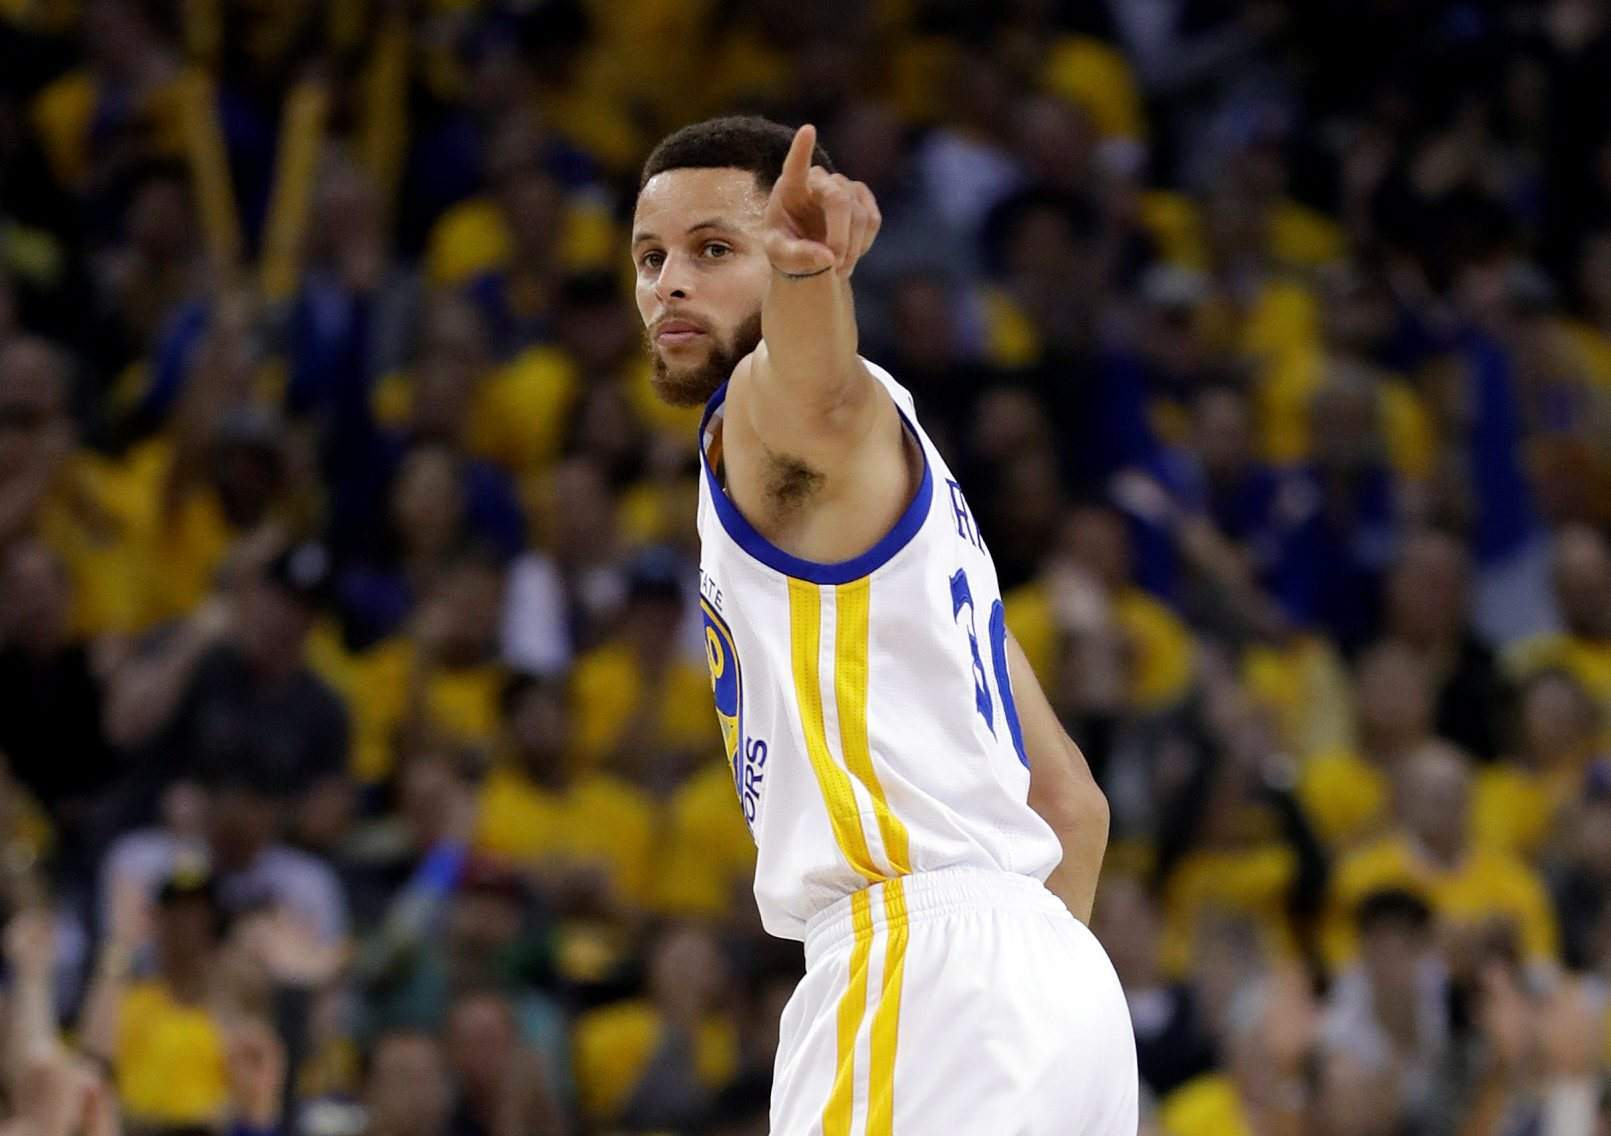 Durango student battling cancer will meet nba hero stephen curry golden state warriors guard stephen curry signals after scoring against the san antonio spurs during the first half of game 2 of the 2017 western conference m4hsunfo